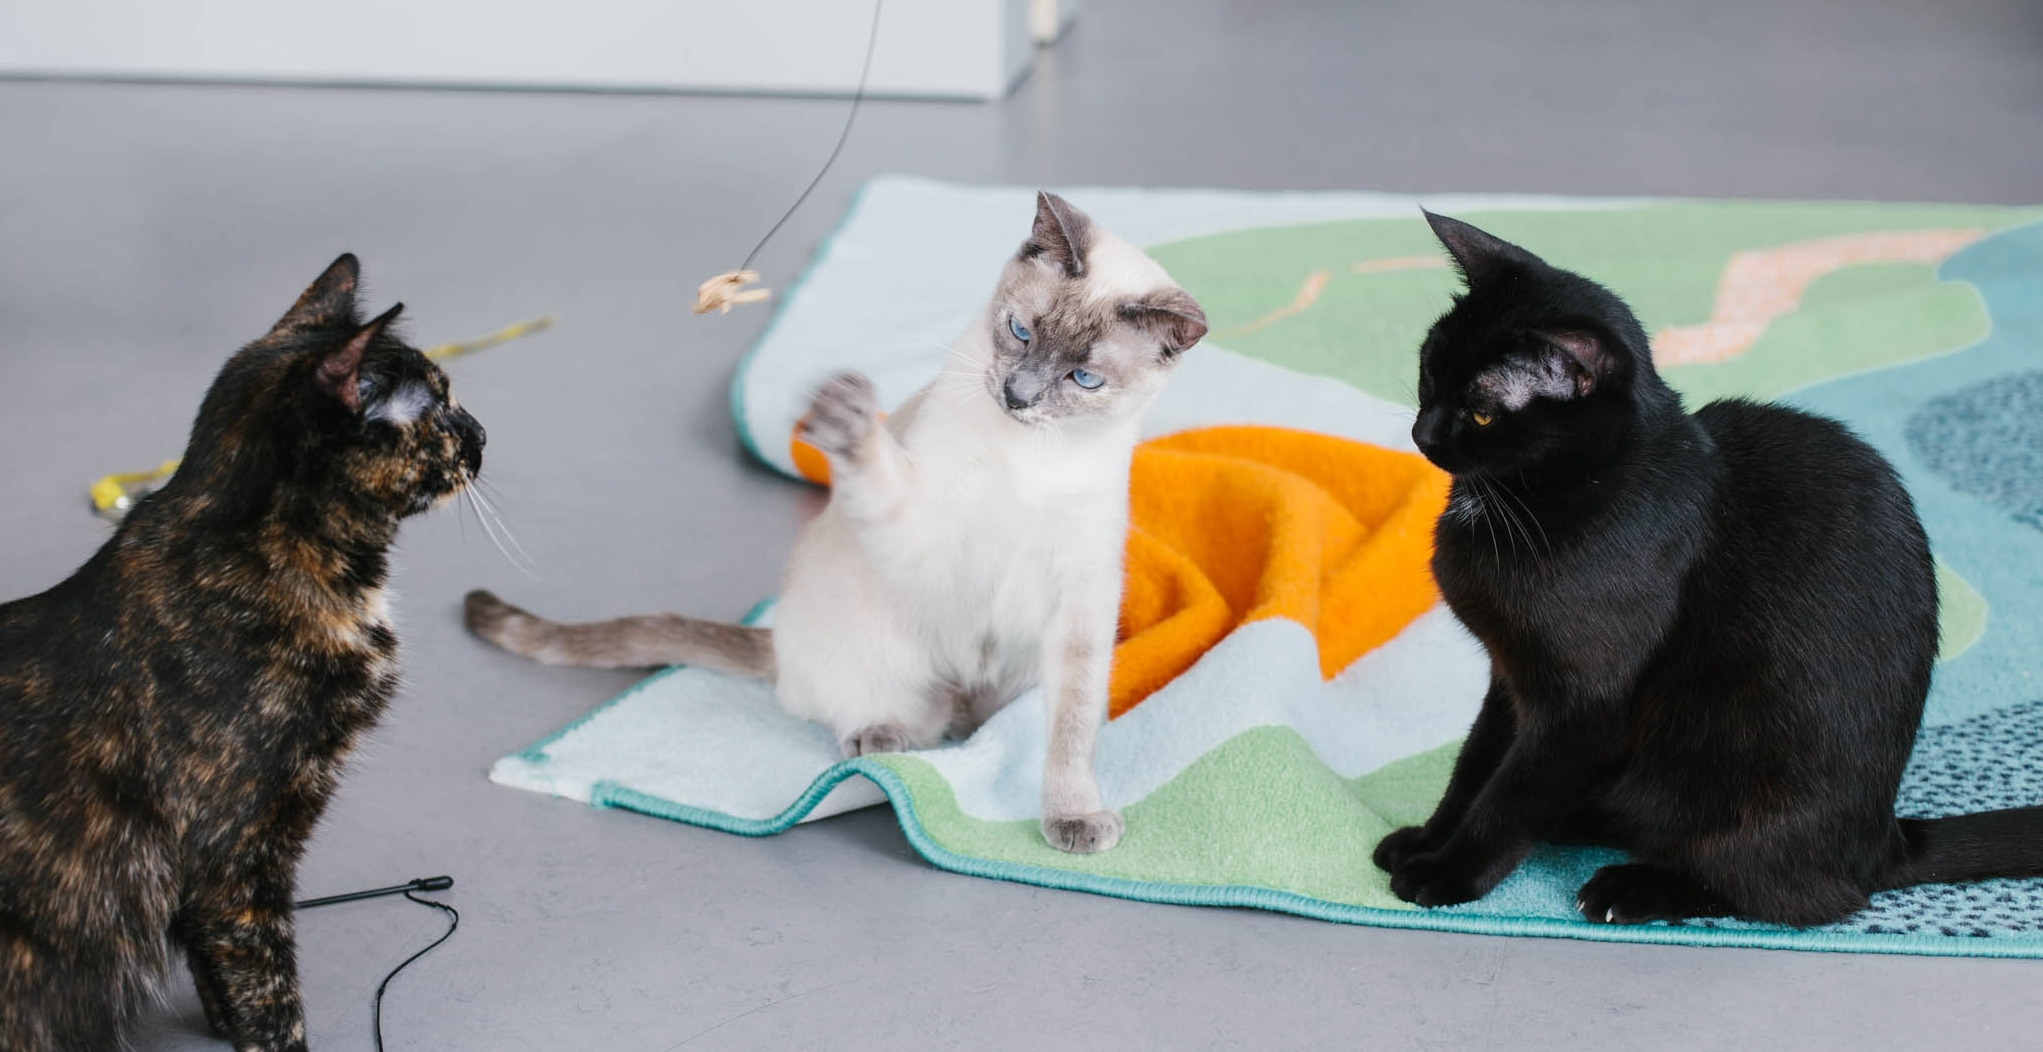 Tyra, like lots of Forgotten Kittens, has built confidence through play. Photo by Scott Russell.